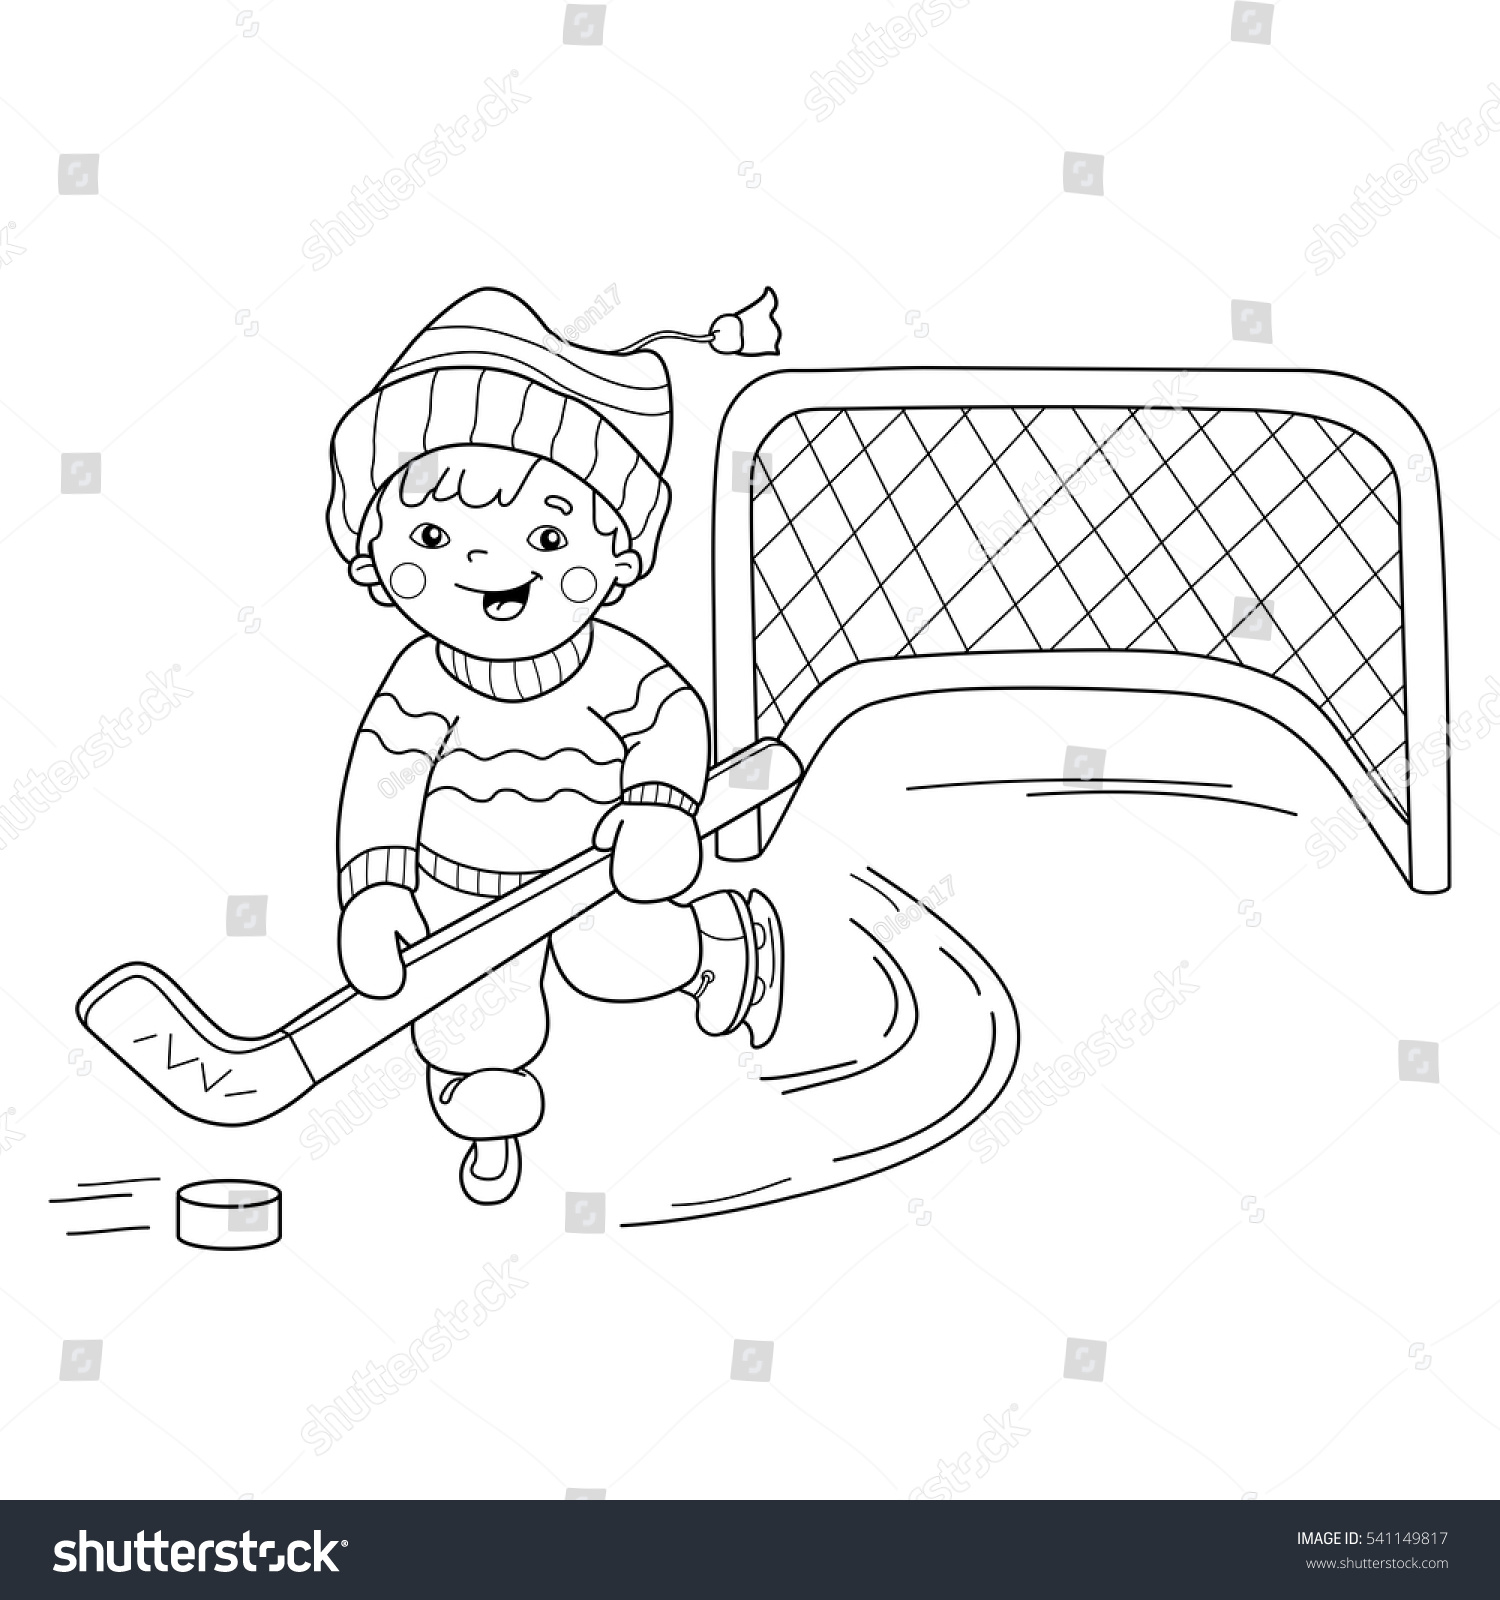 Coloring Page Outline Cartoon Boy Playing Stock Vector 541149817 ...